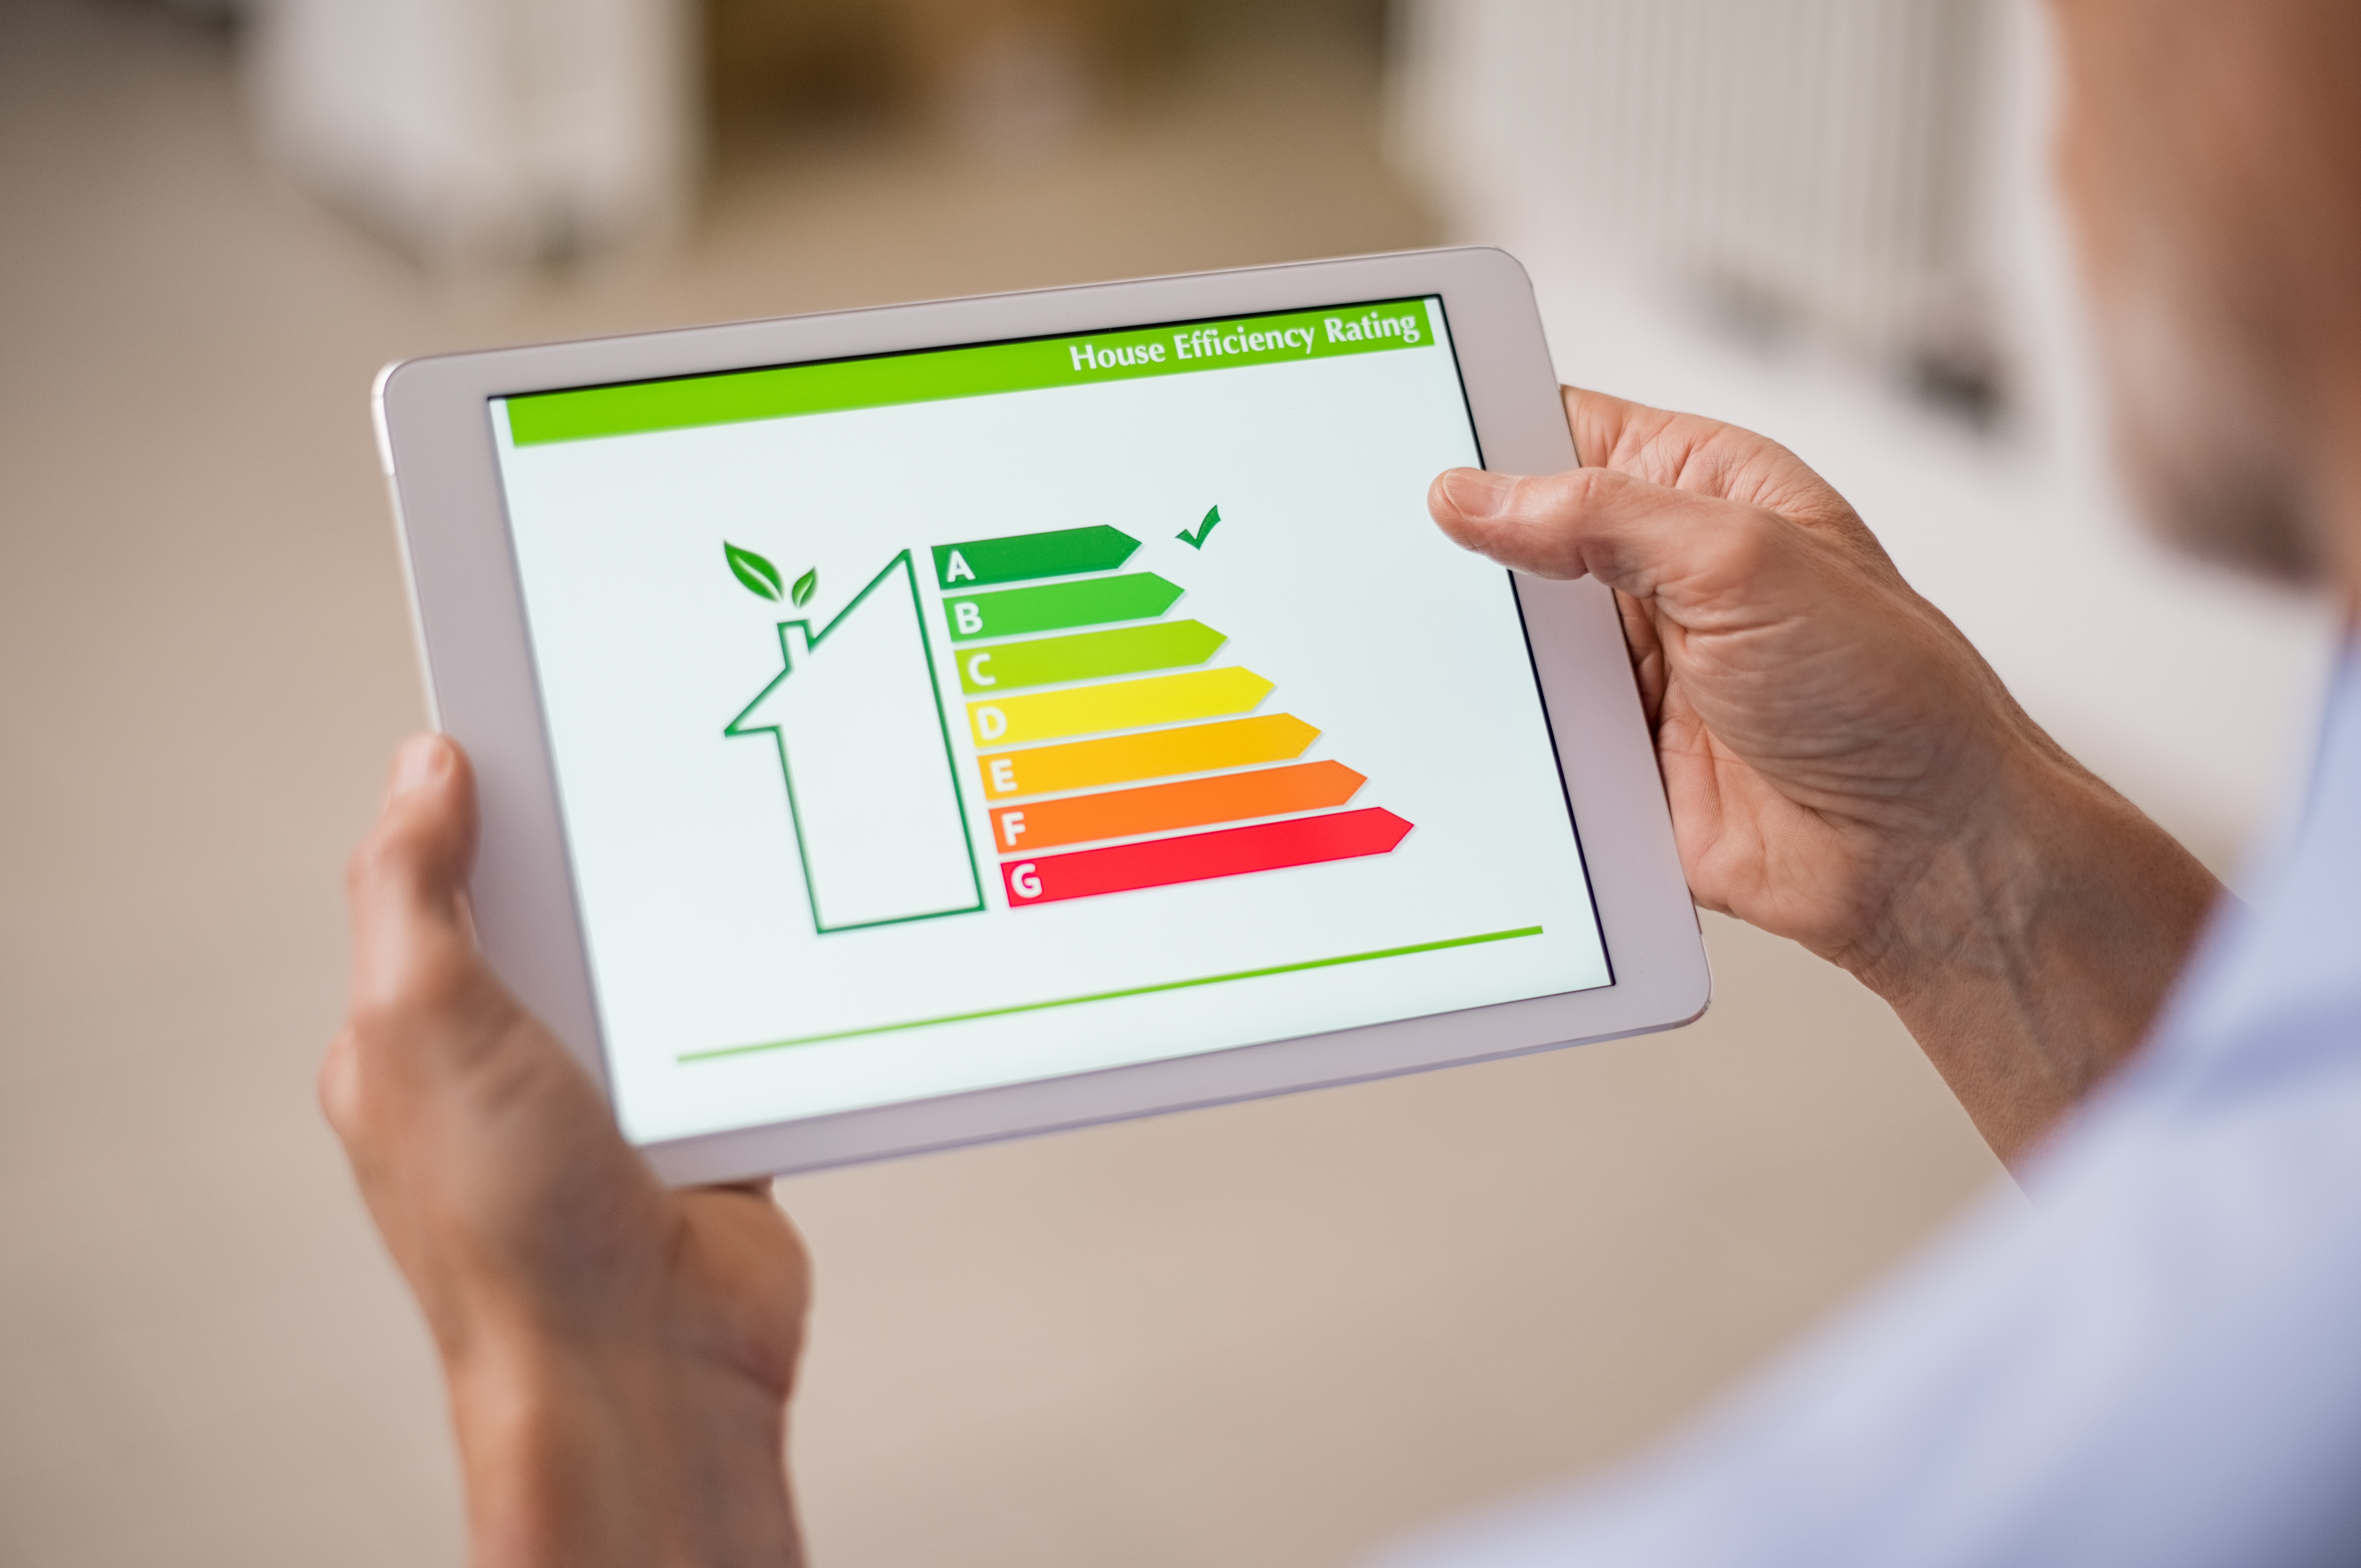 Scaling up energy efficiency investments in buildings in Hungary